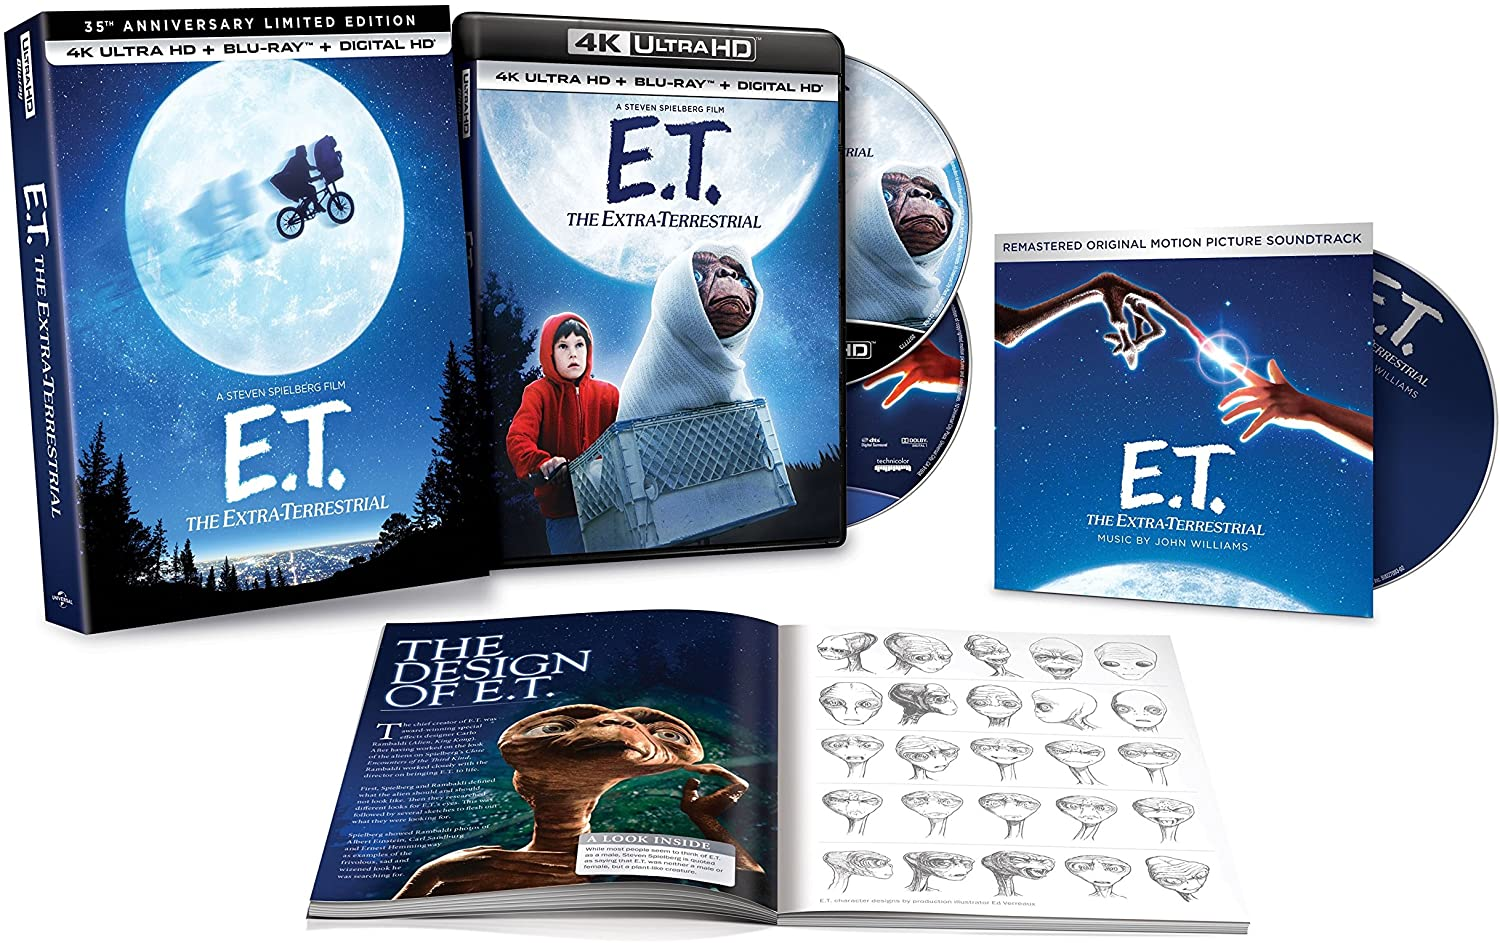 E.T. The Extra-Terrestrial: 35th Anniversary Limited Edition